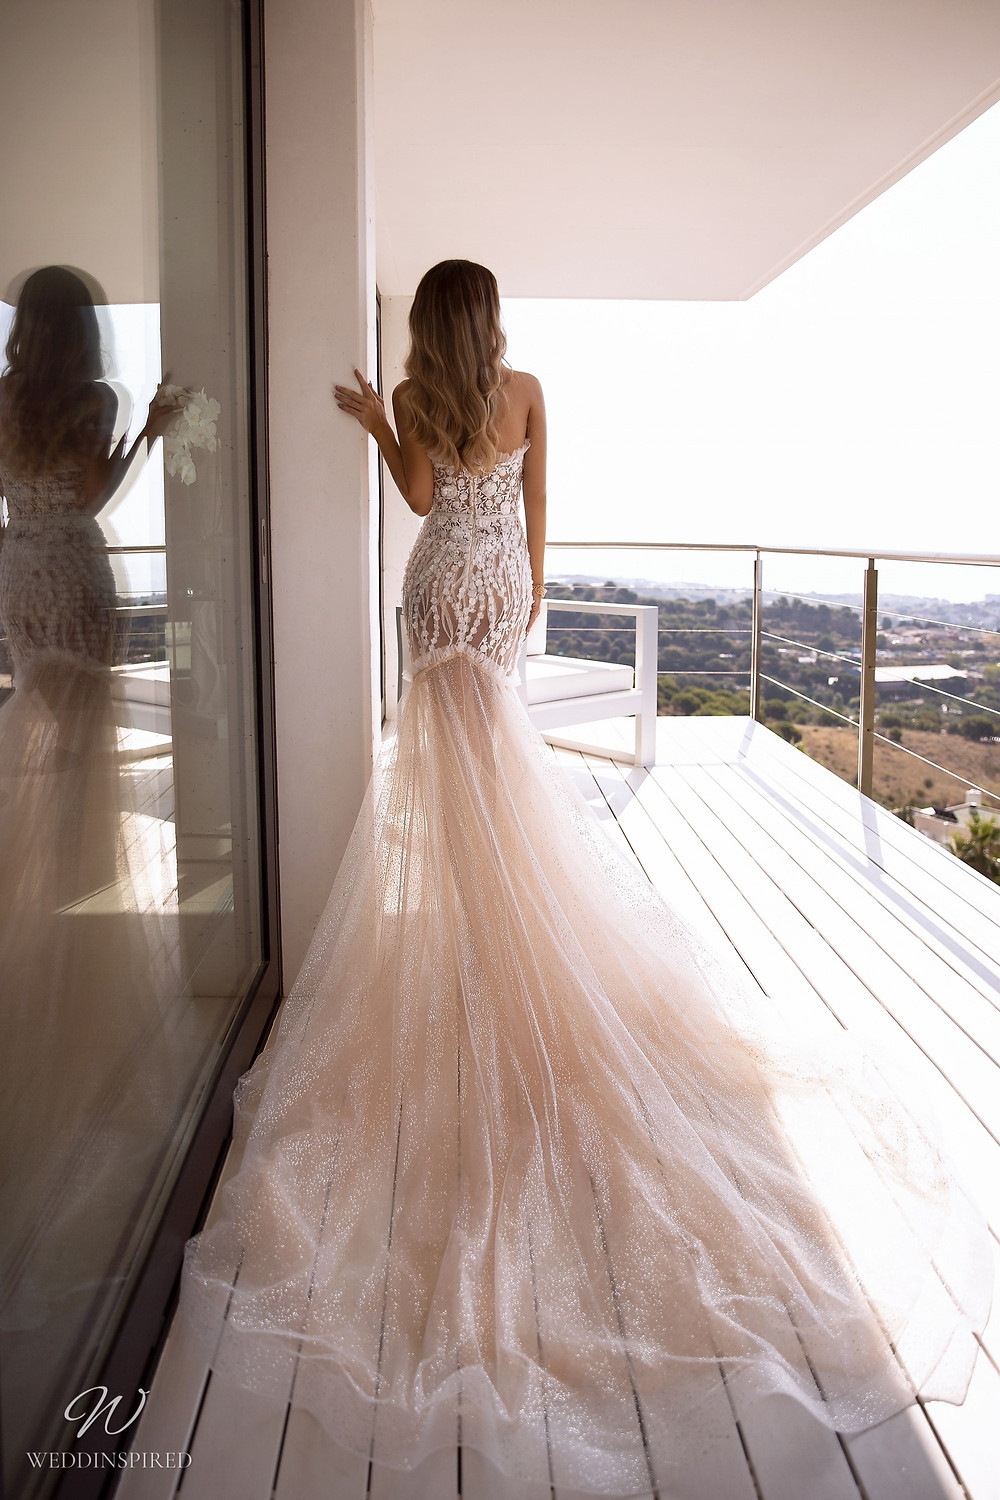 A Tina Valerdi blush mermaid wedding dress with a lace bodice and tulle skirt